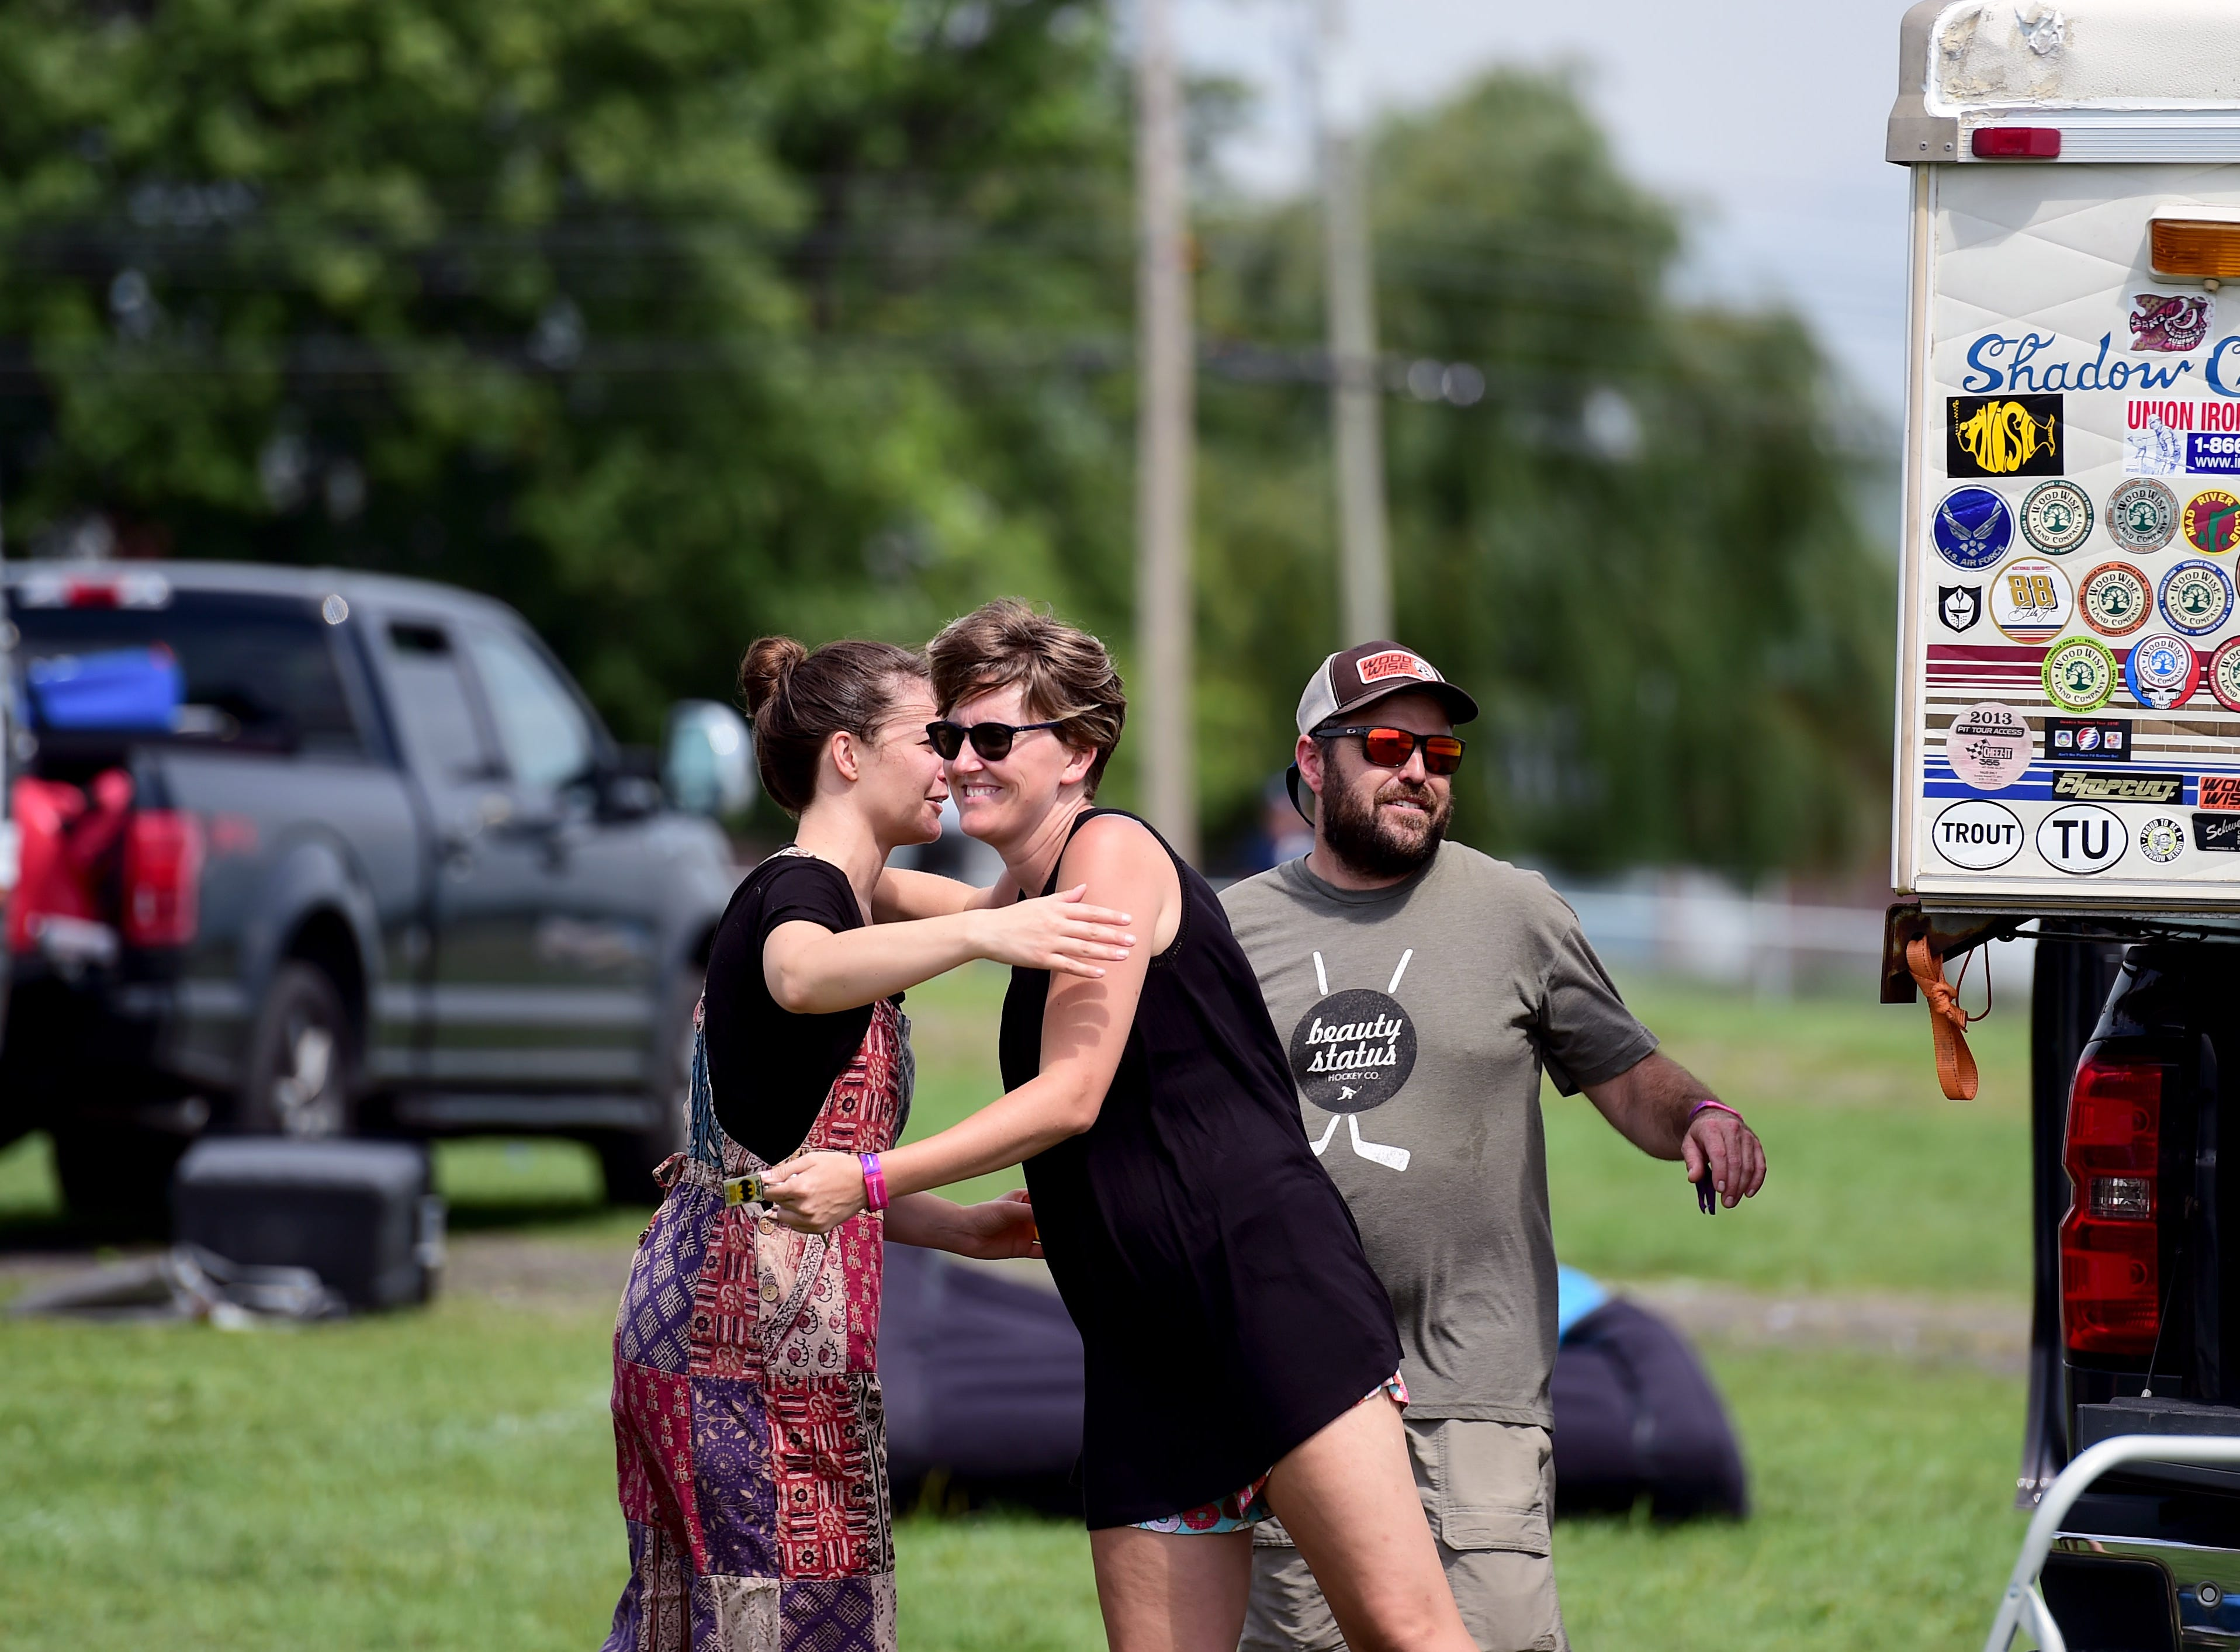 Phish fans Stephanie Balfoort of Rochester, Corbett of Chicago and Dan Prokupets of Honeoye Falls say goodbye and prepare to leave Watkins Glen International on Friday, August 17, 2018. The three-day Curveball Festival was cancelled on Thursday night due to water quality issues on the site.